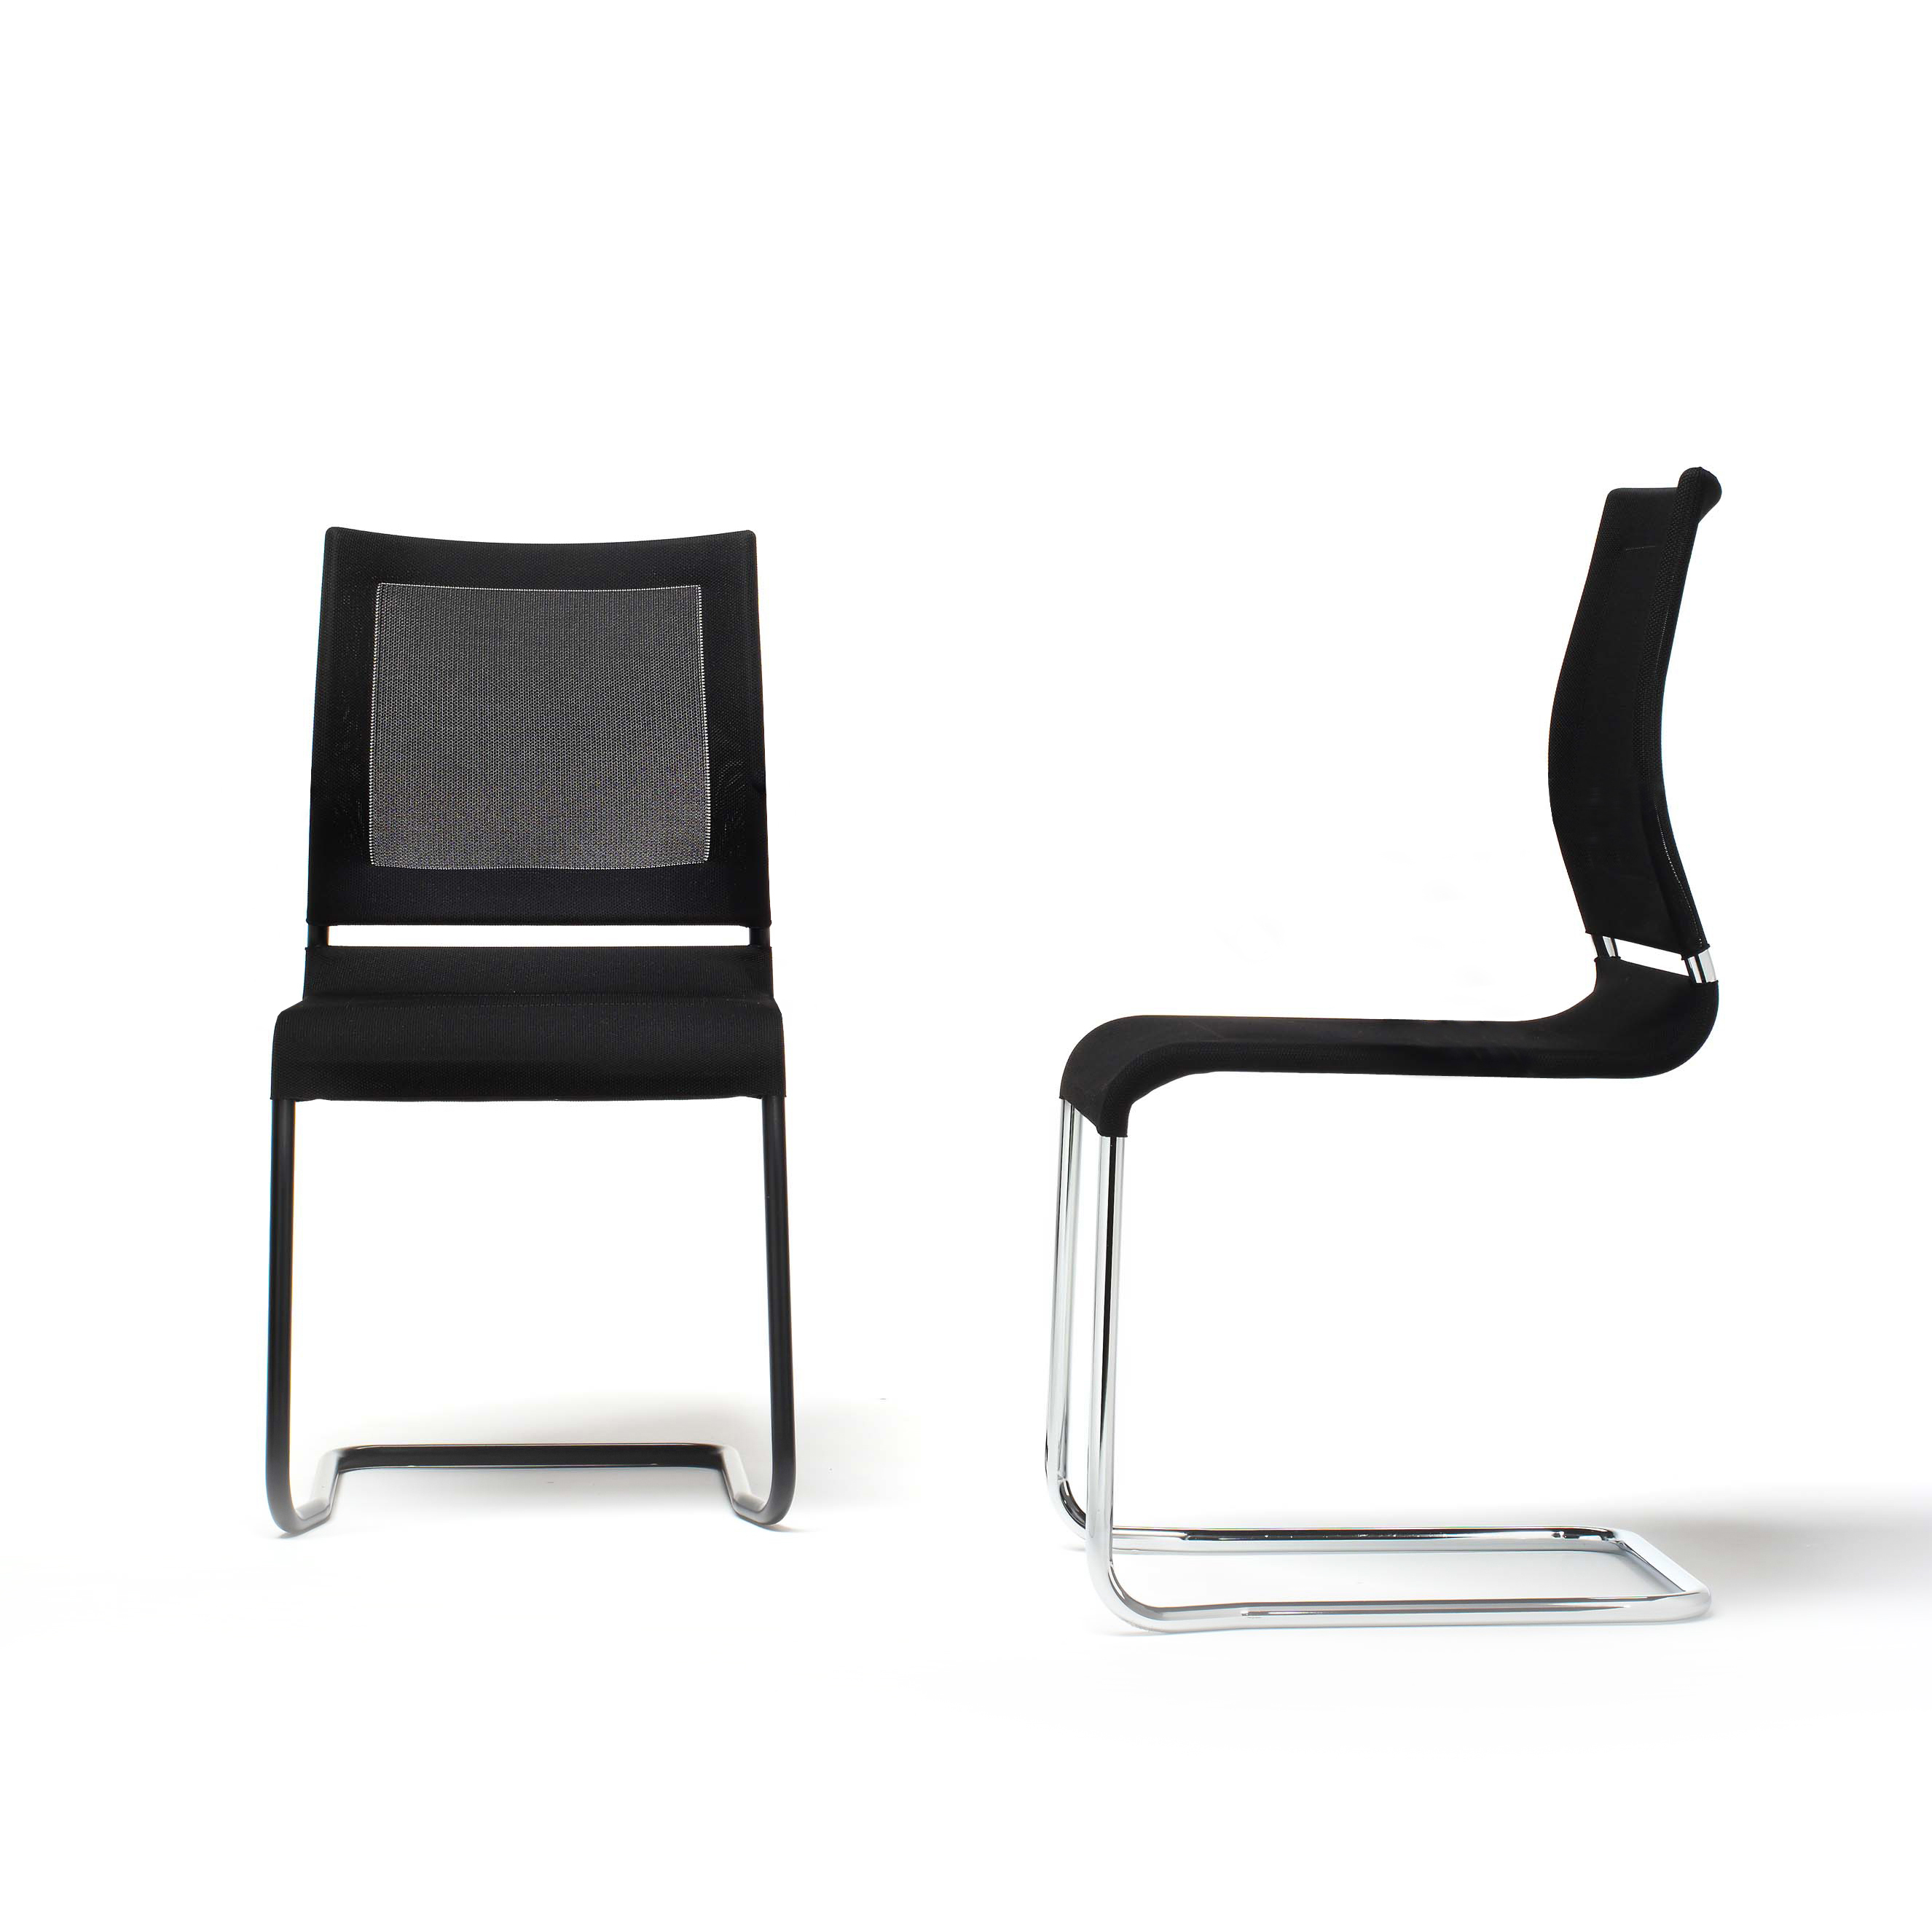 04aS_Estel_Comfort&Relax_Office-Chair_Verso